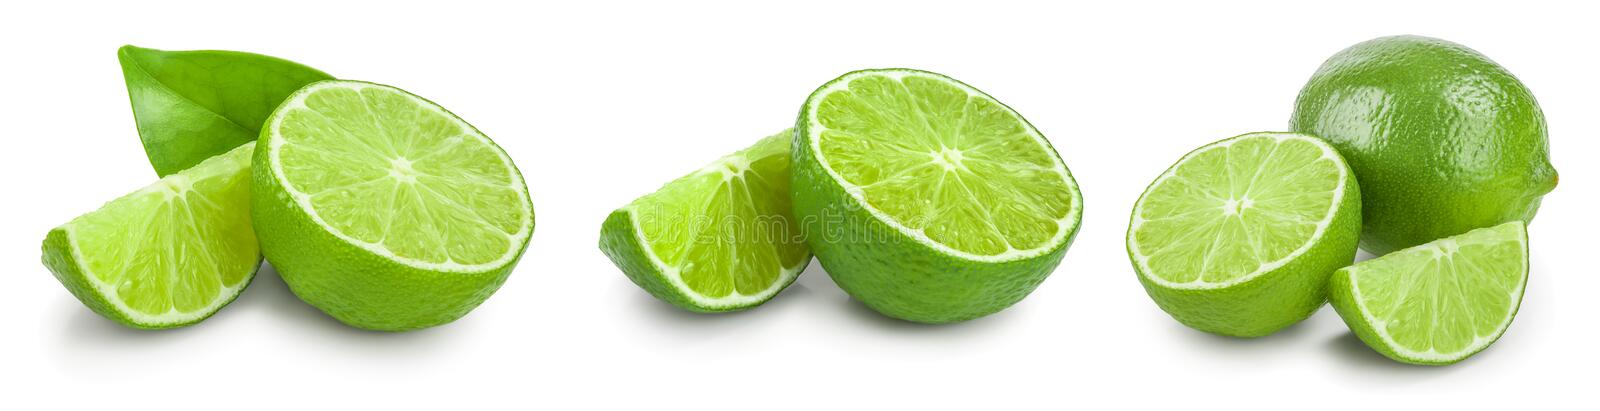 Lime with half and leaf isolated on white background. Set or collection royalty free stock photo